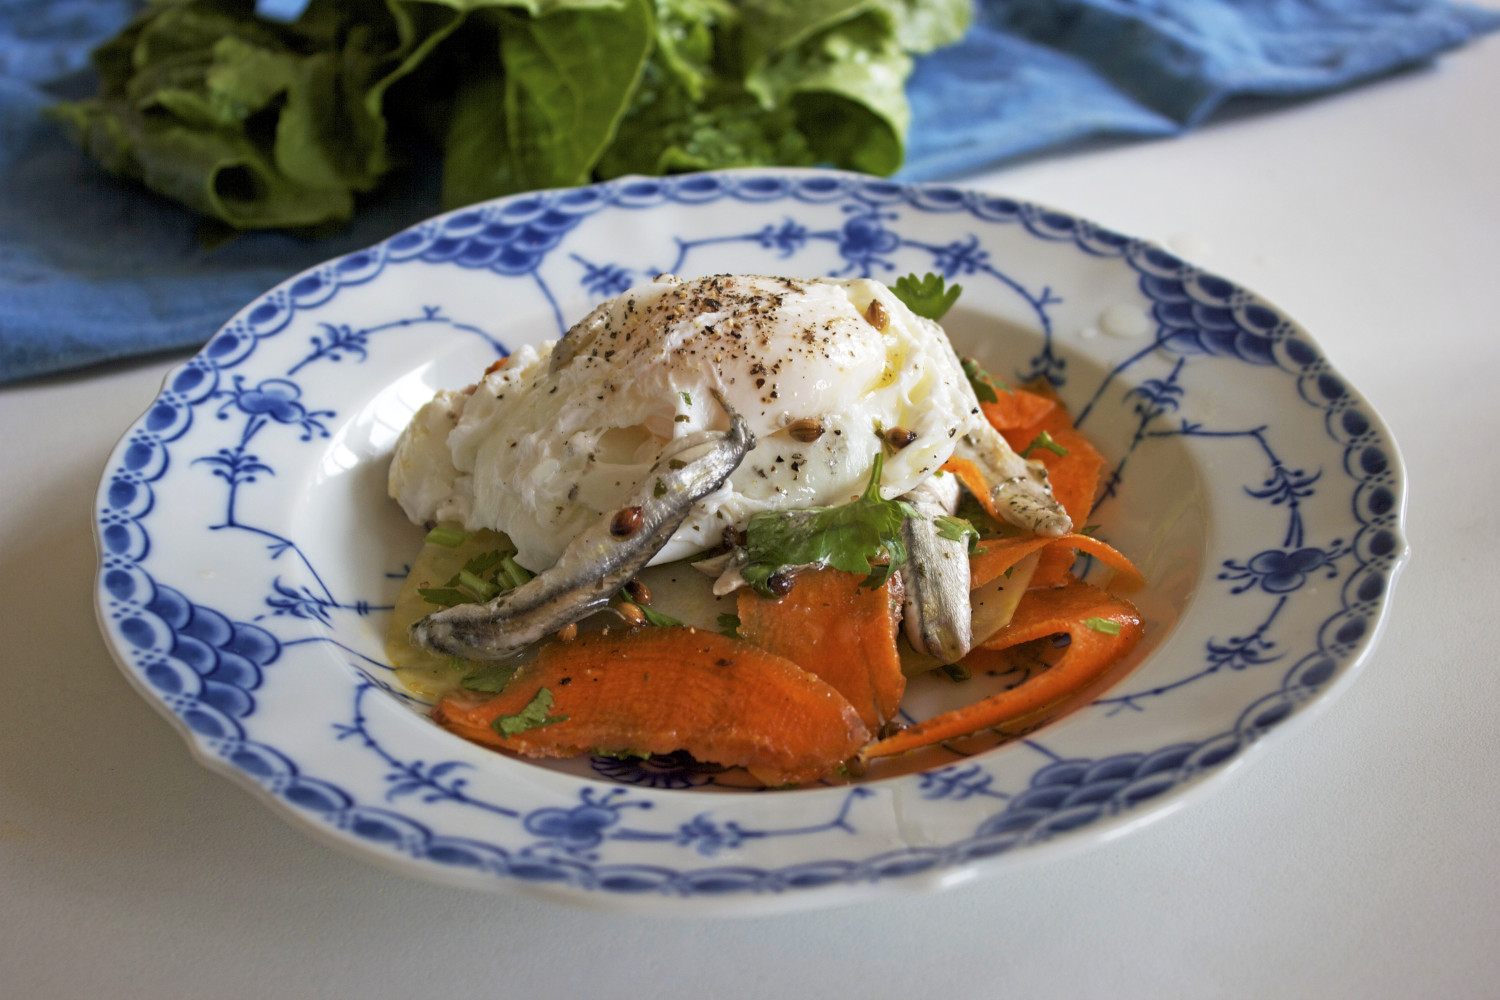 Carrot, Kohlrabi and Coriander Salad